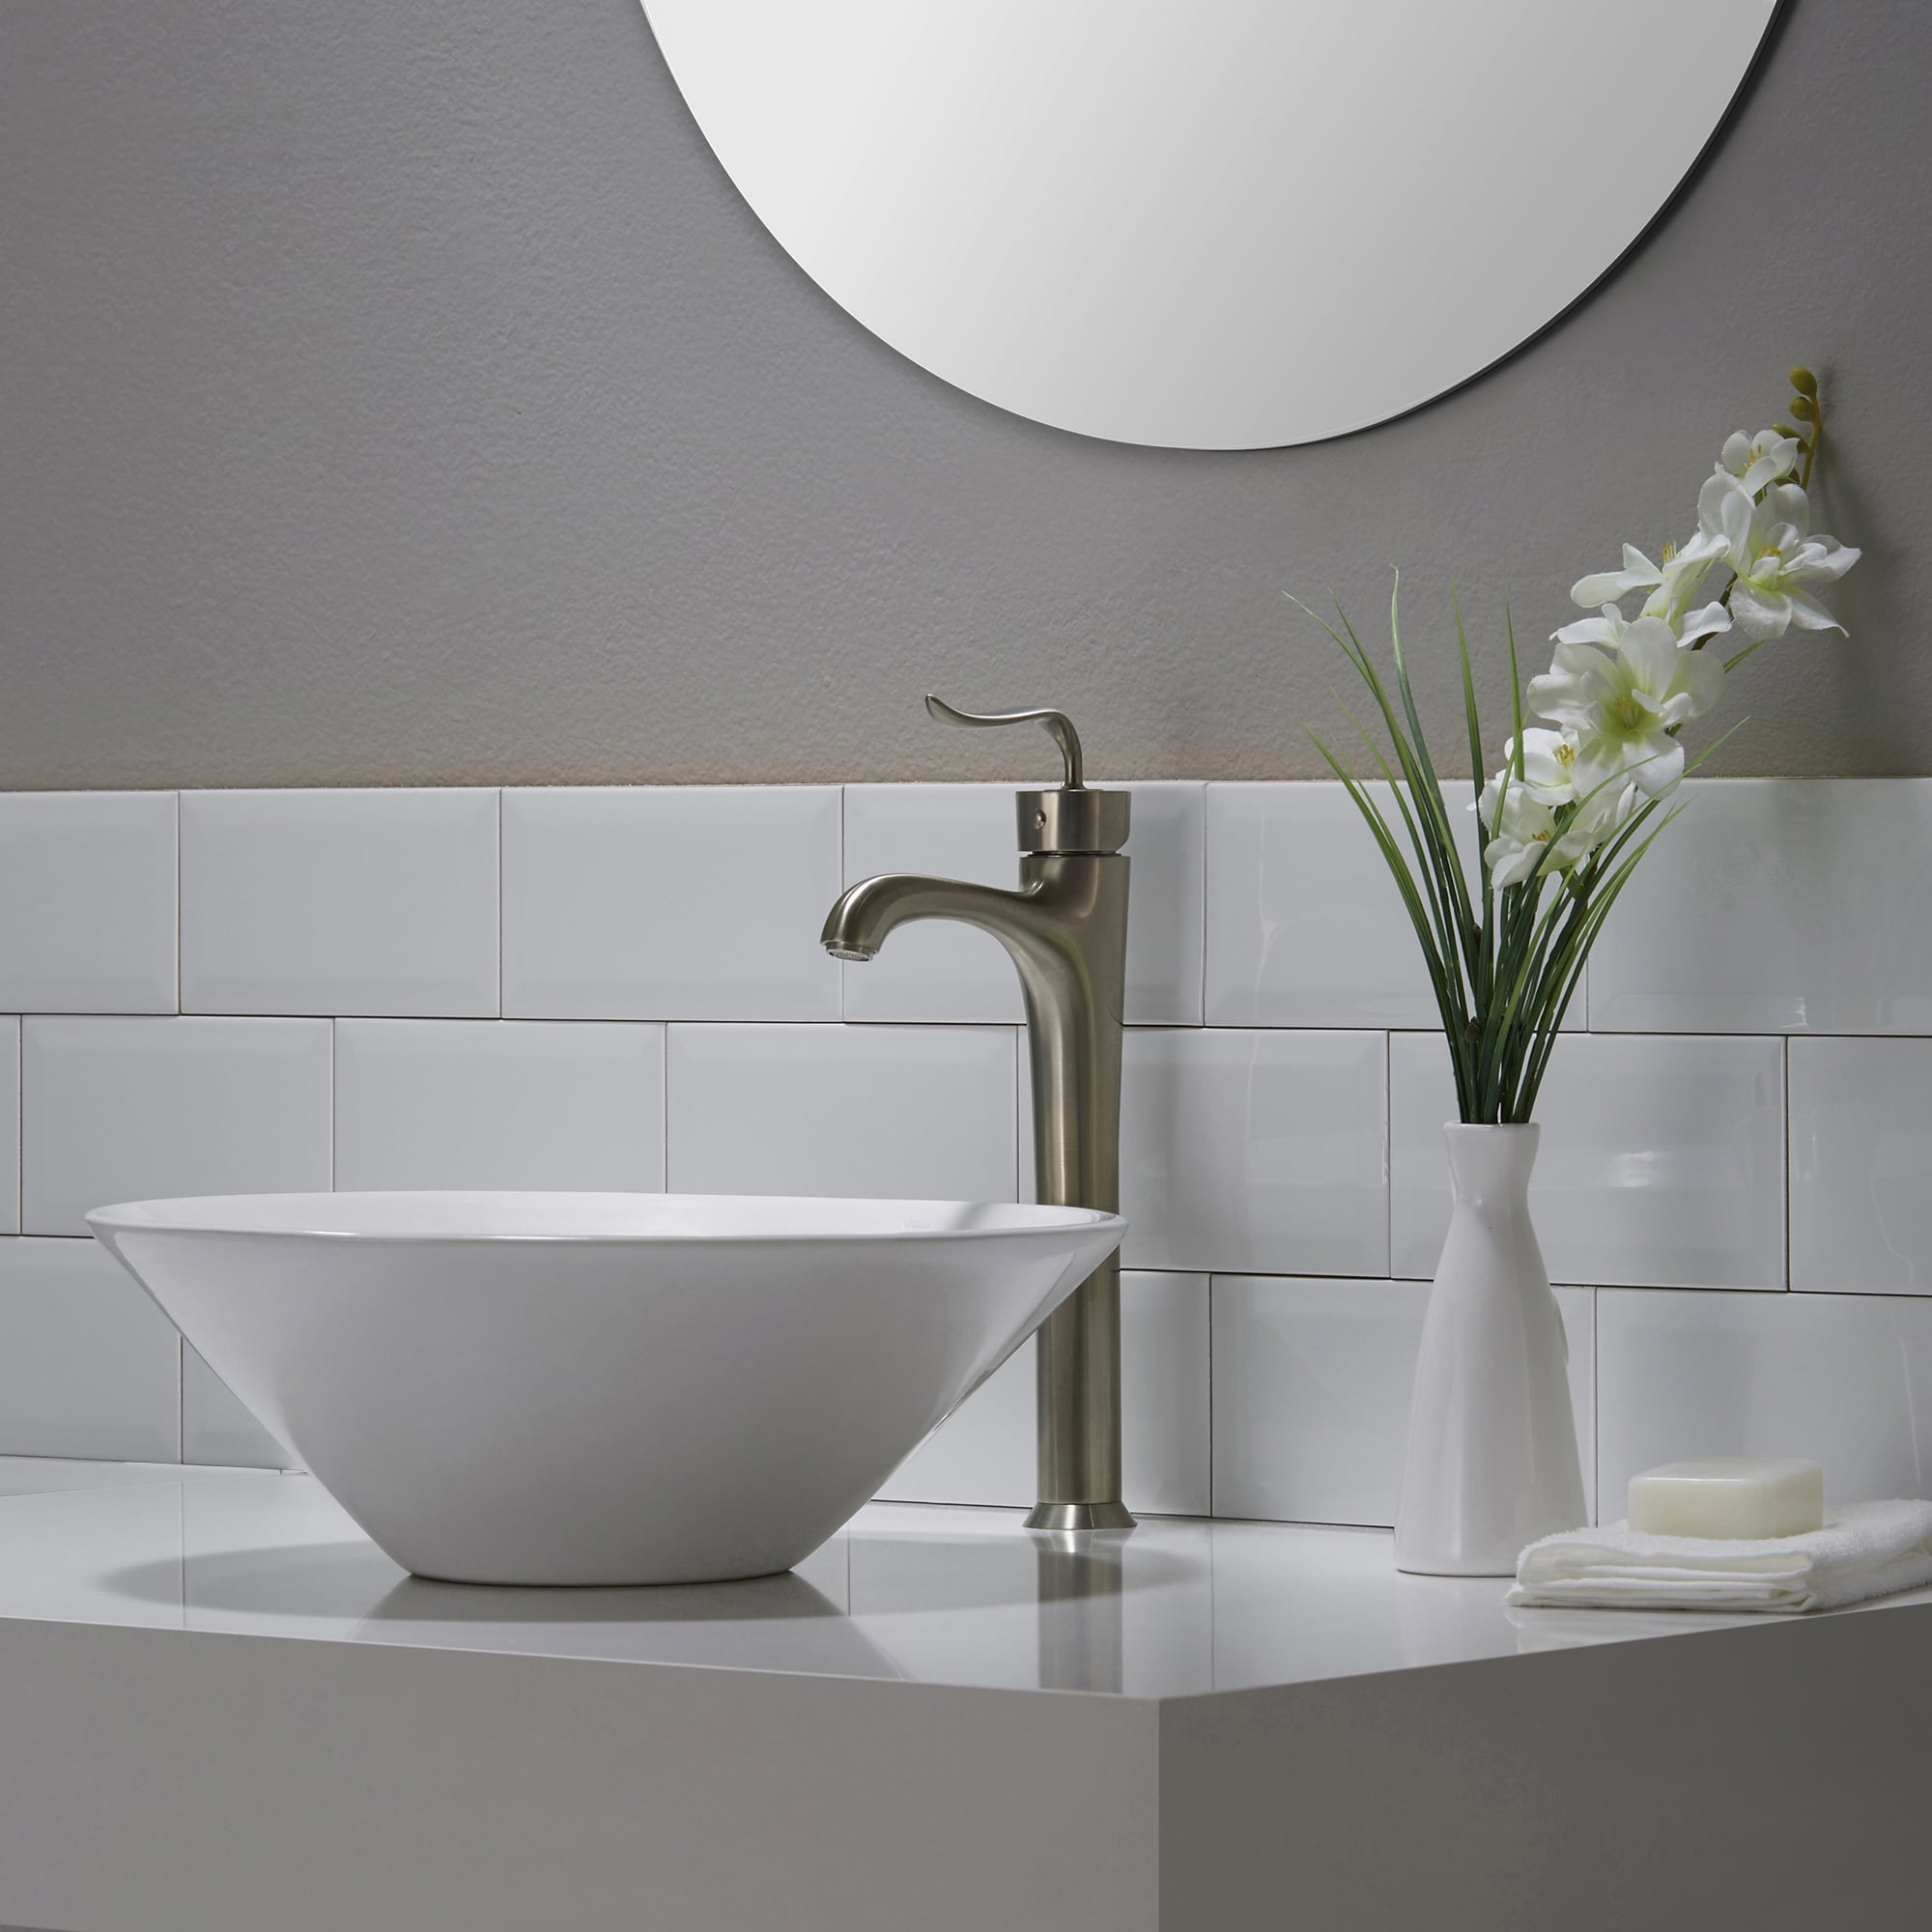 Shop All Kraus Bathroom Home Improvement Items!